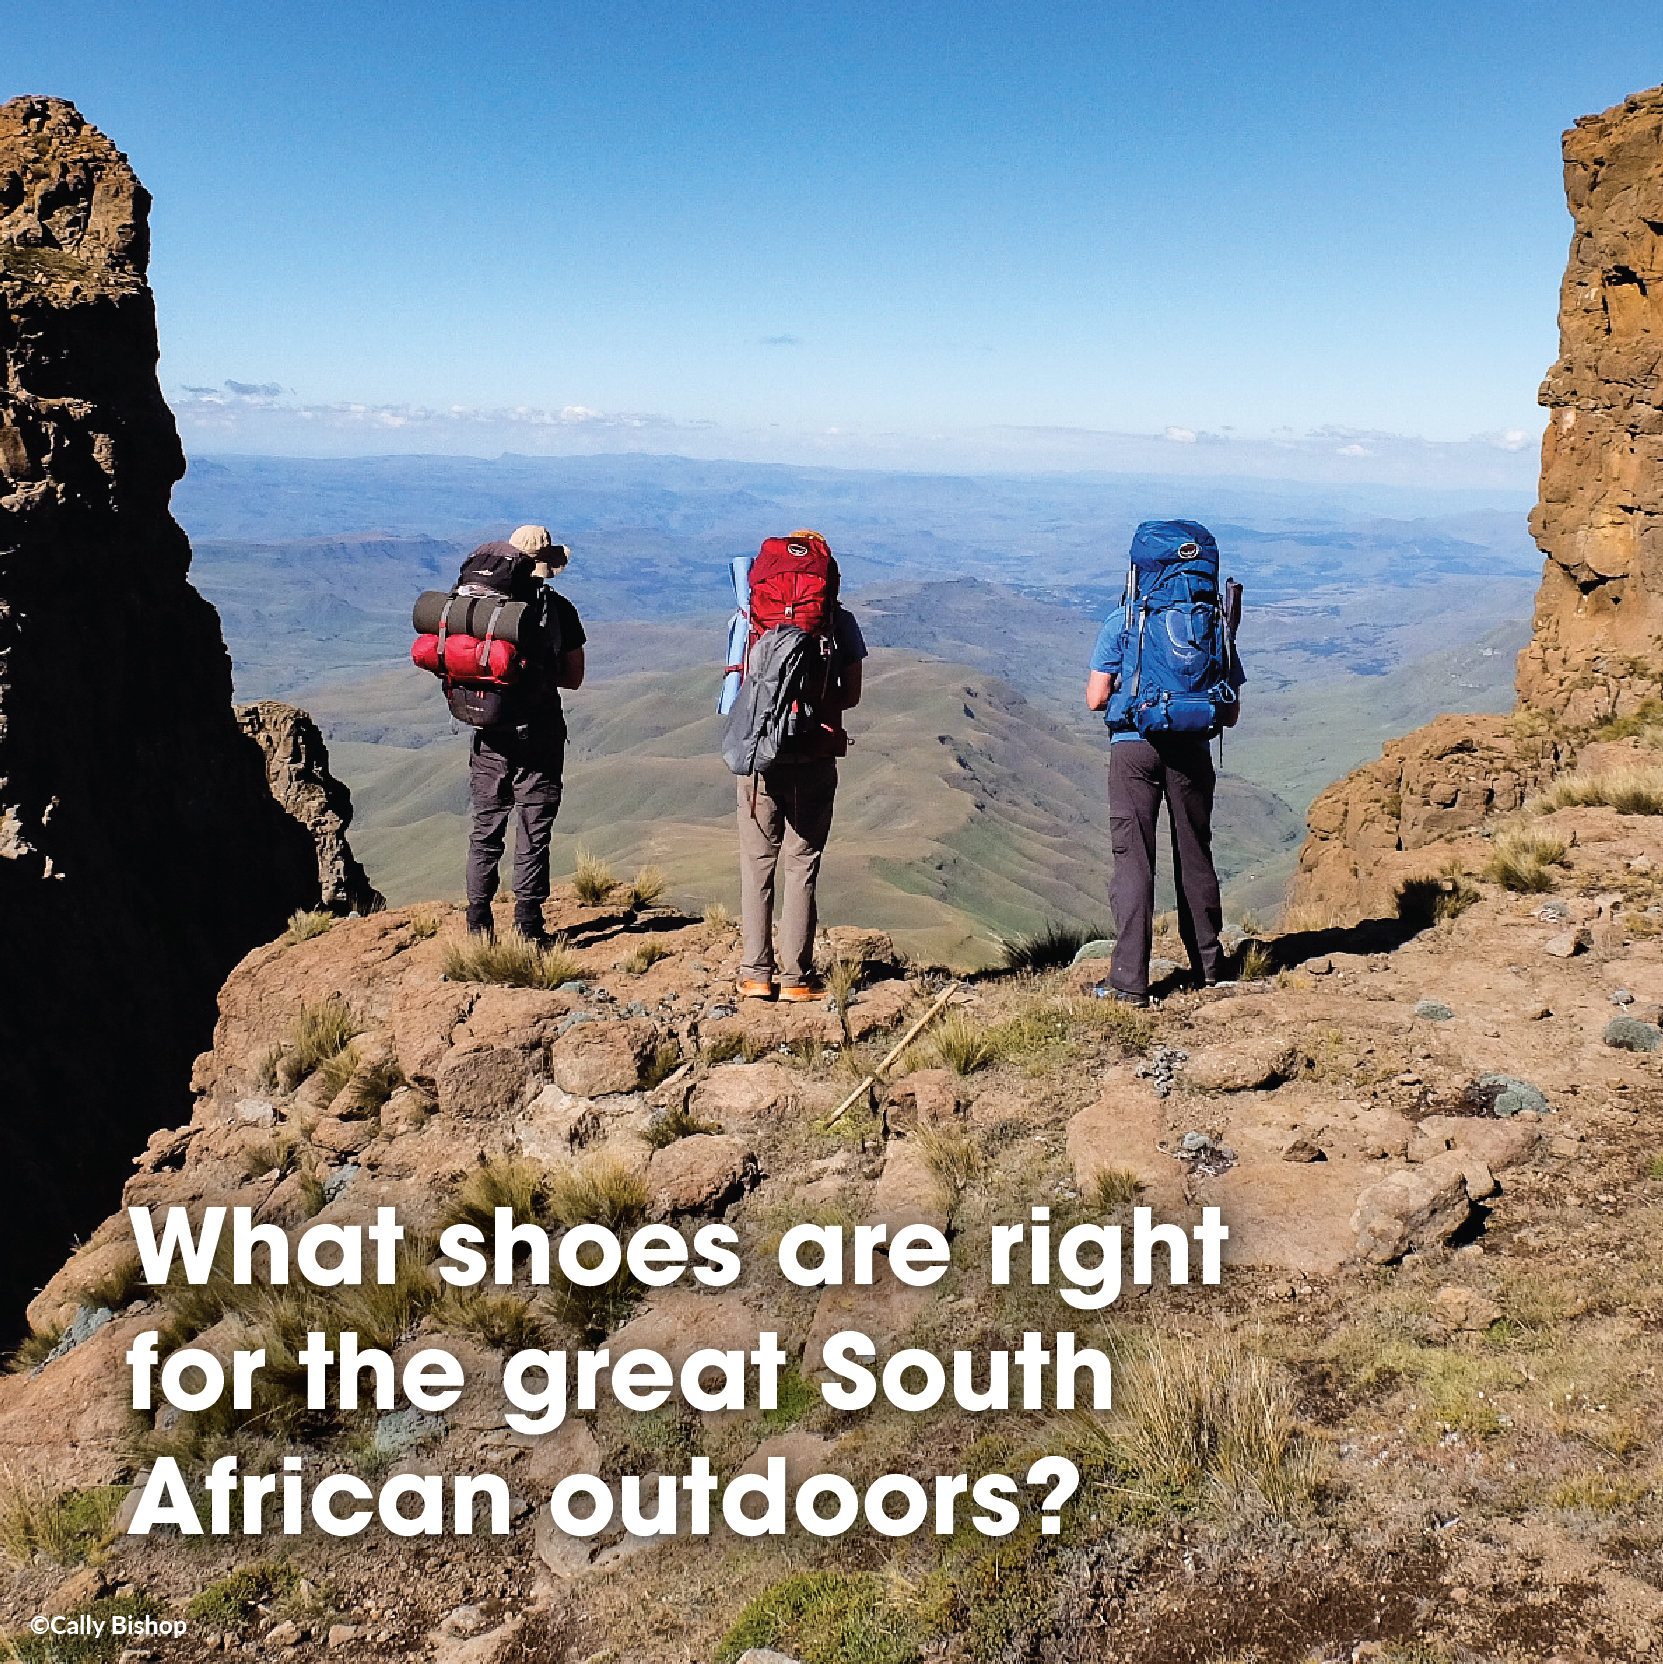 What shoes are right for the great South African outdoors?